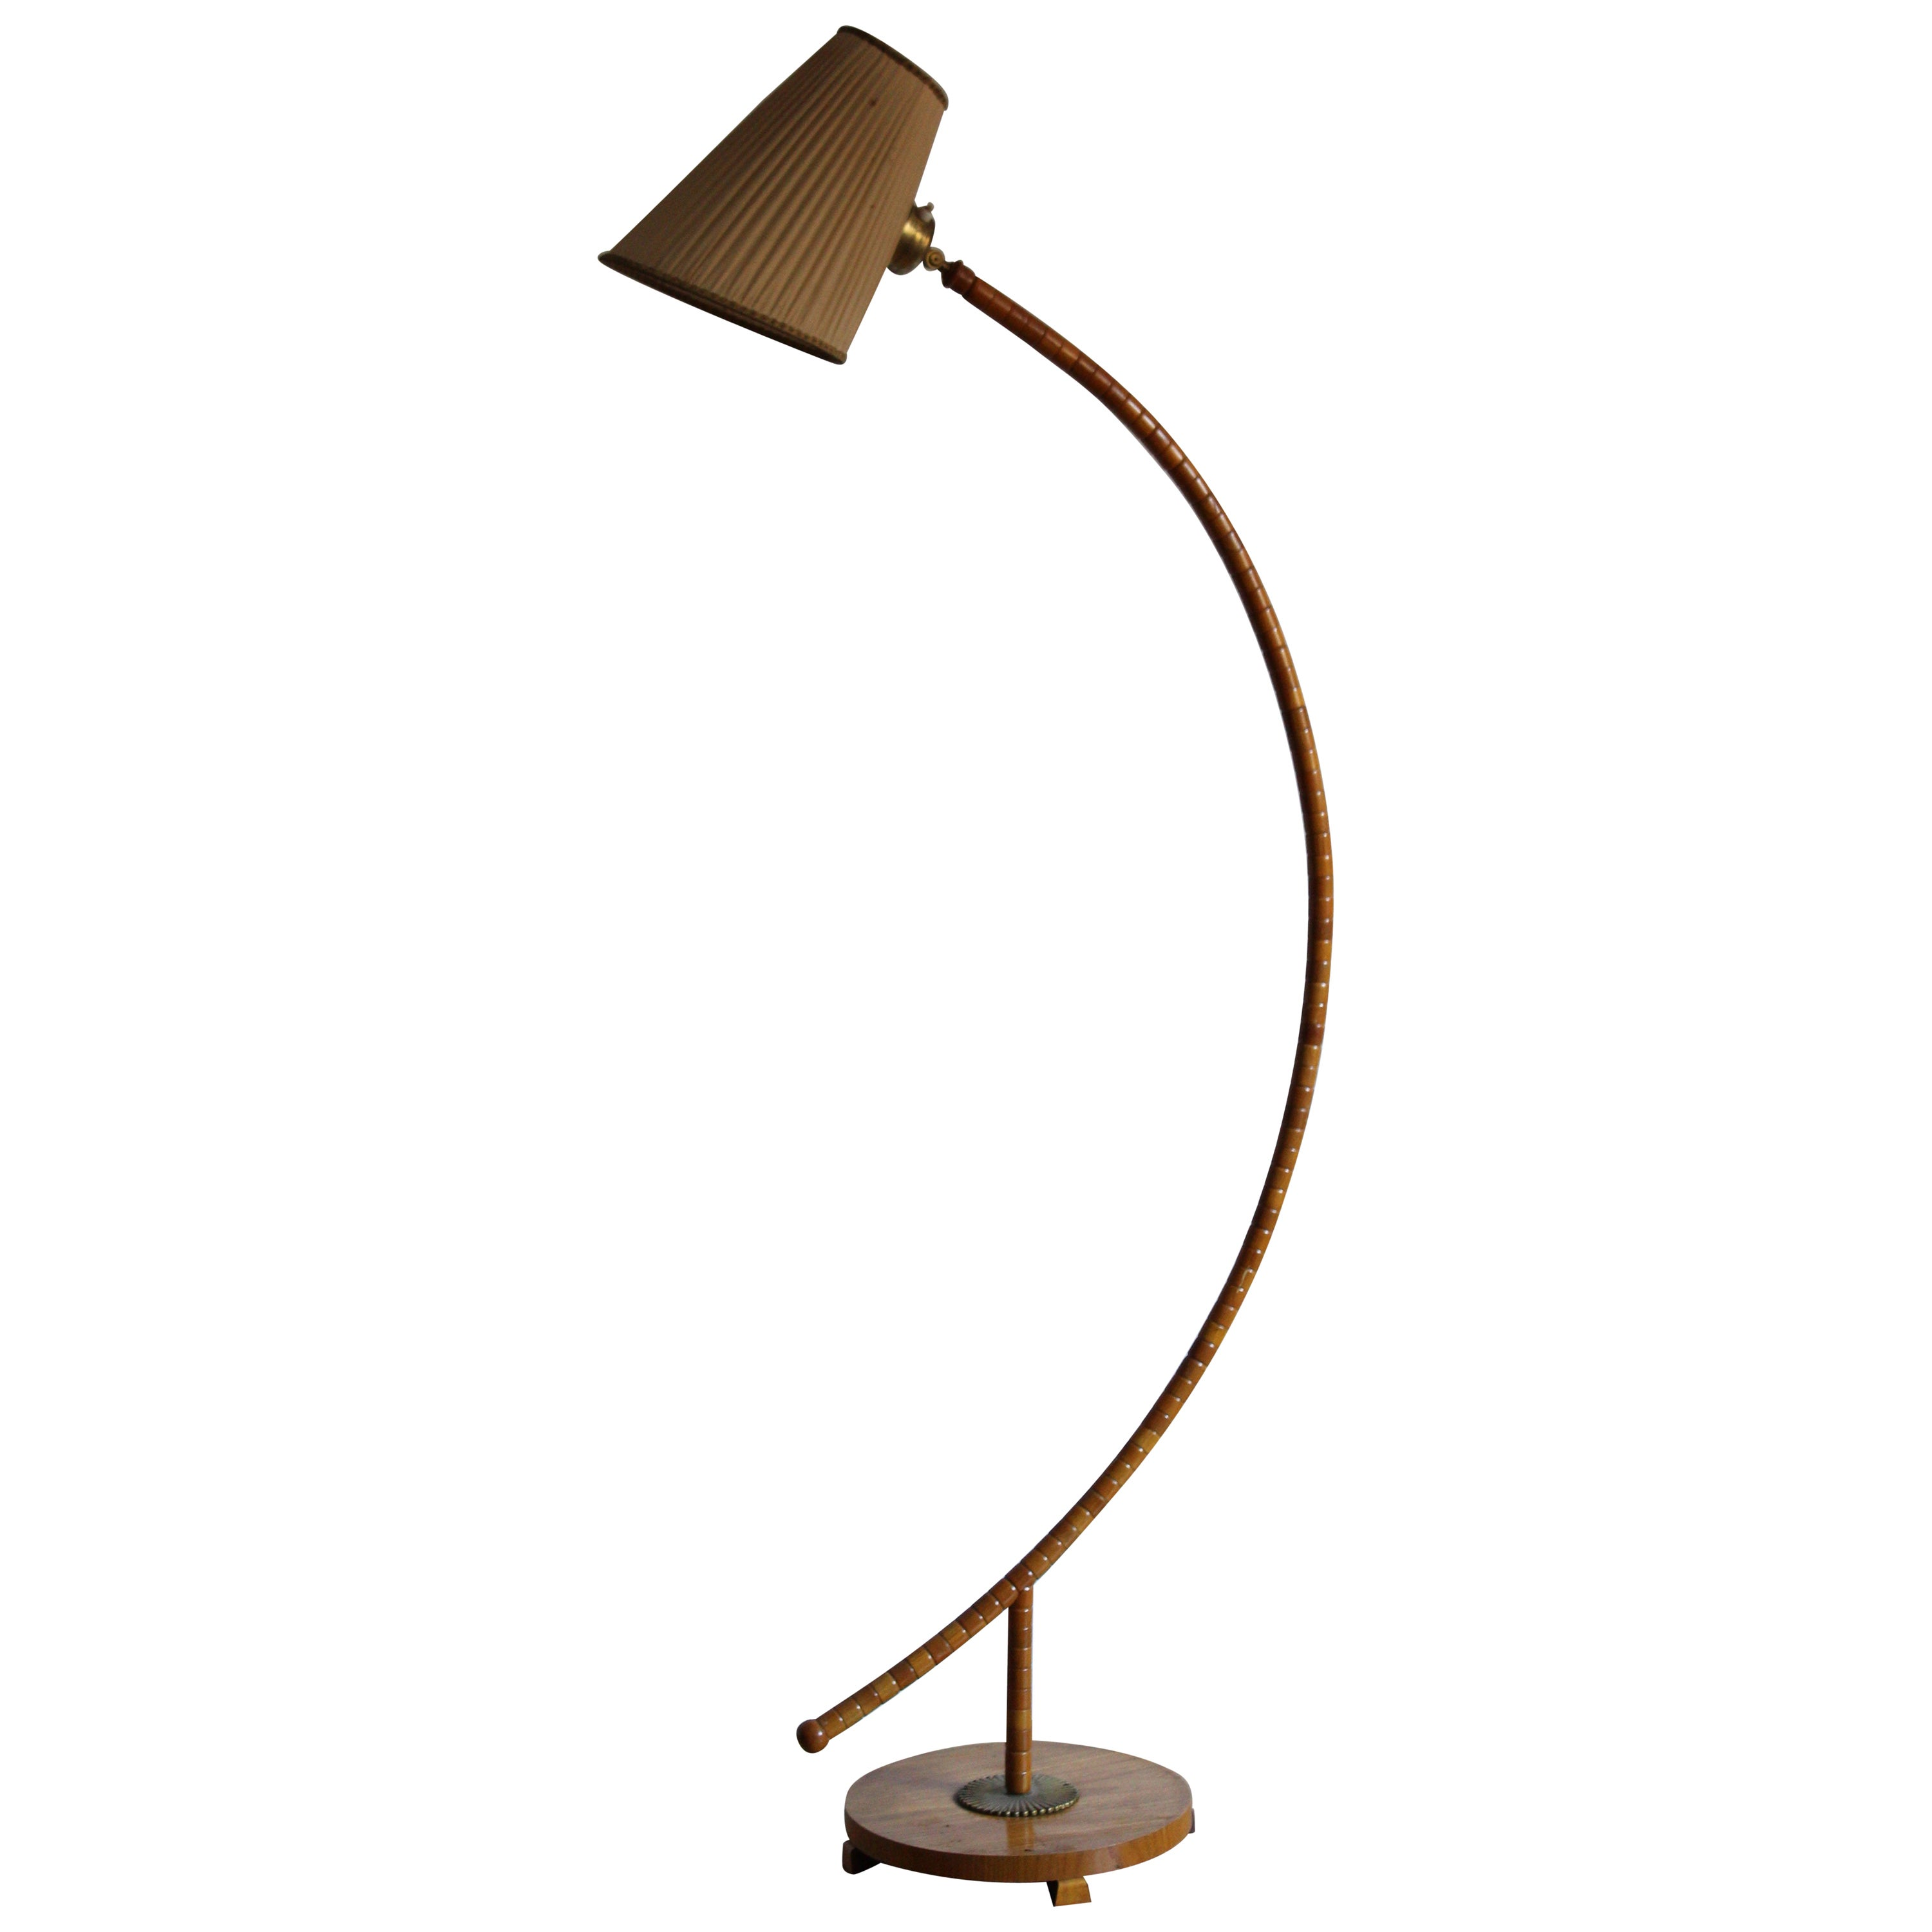 Swedish Modernist Designer, Large Floor Lamp, Wood, Brass, Fabric, 1940s